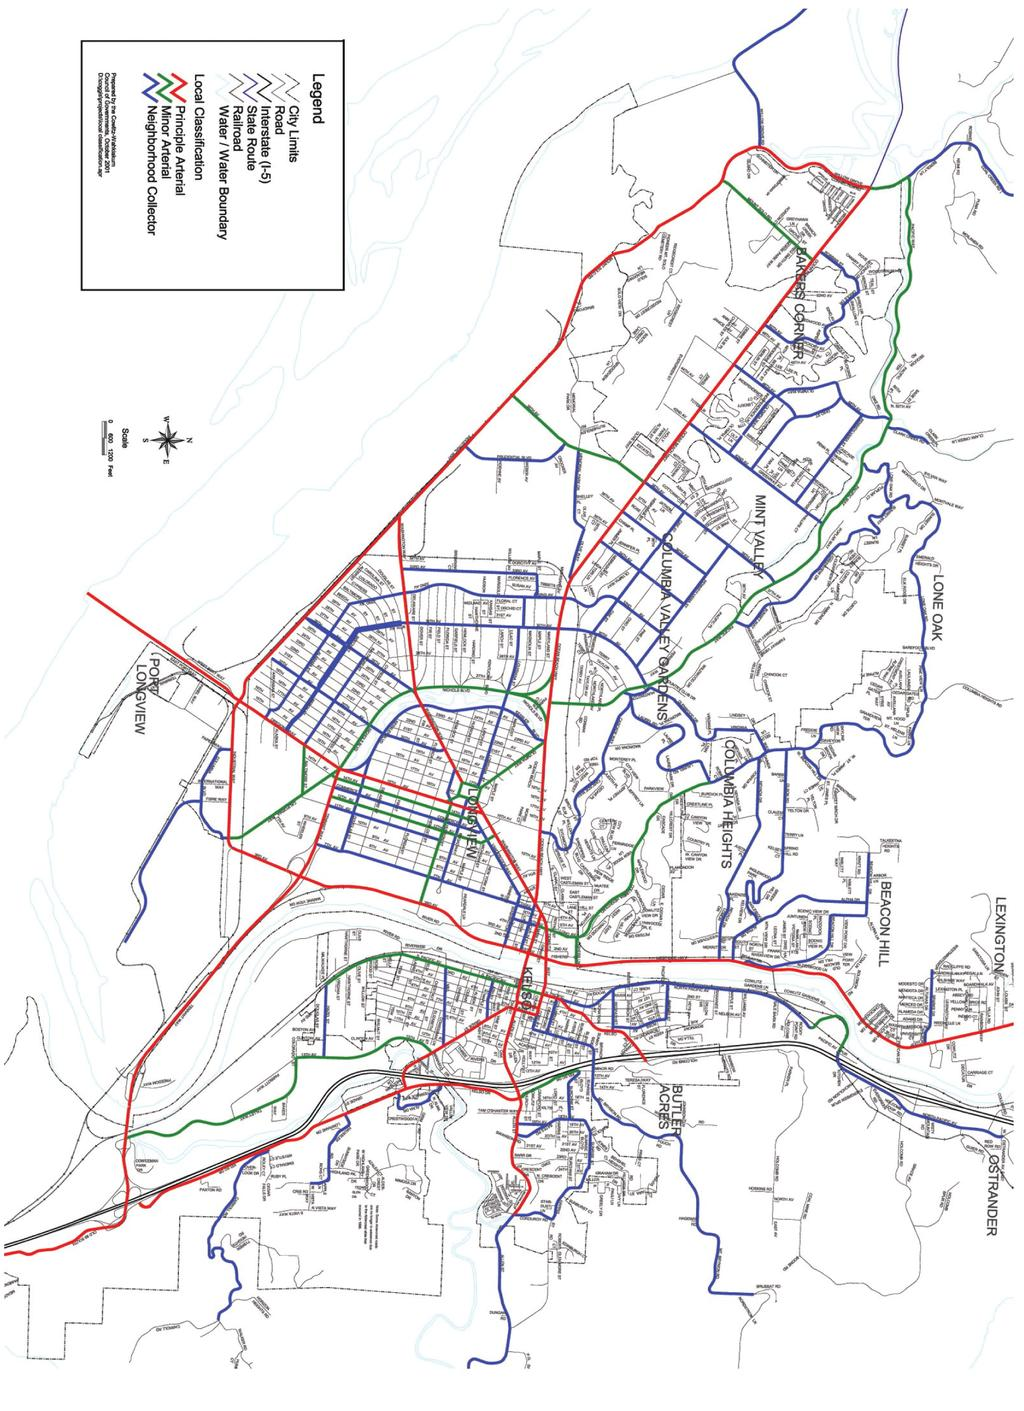 City of Longview Comprehensive Plan December 2006